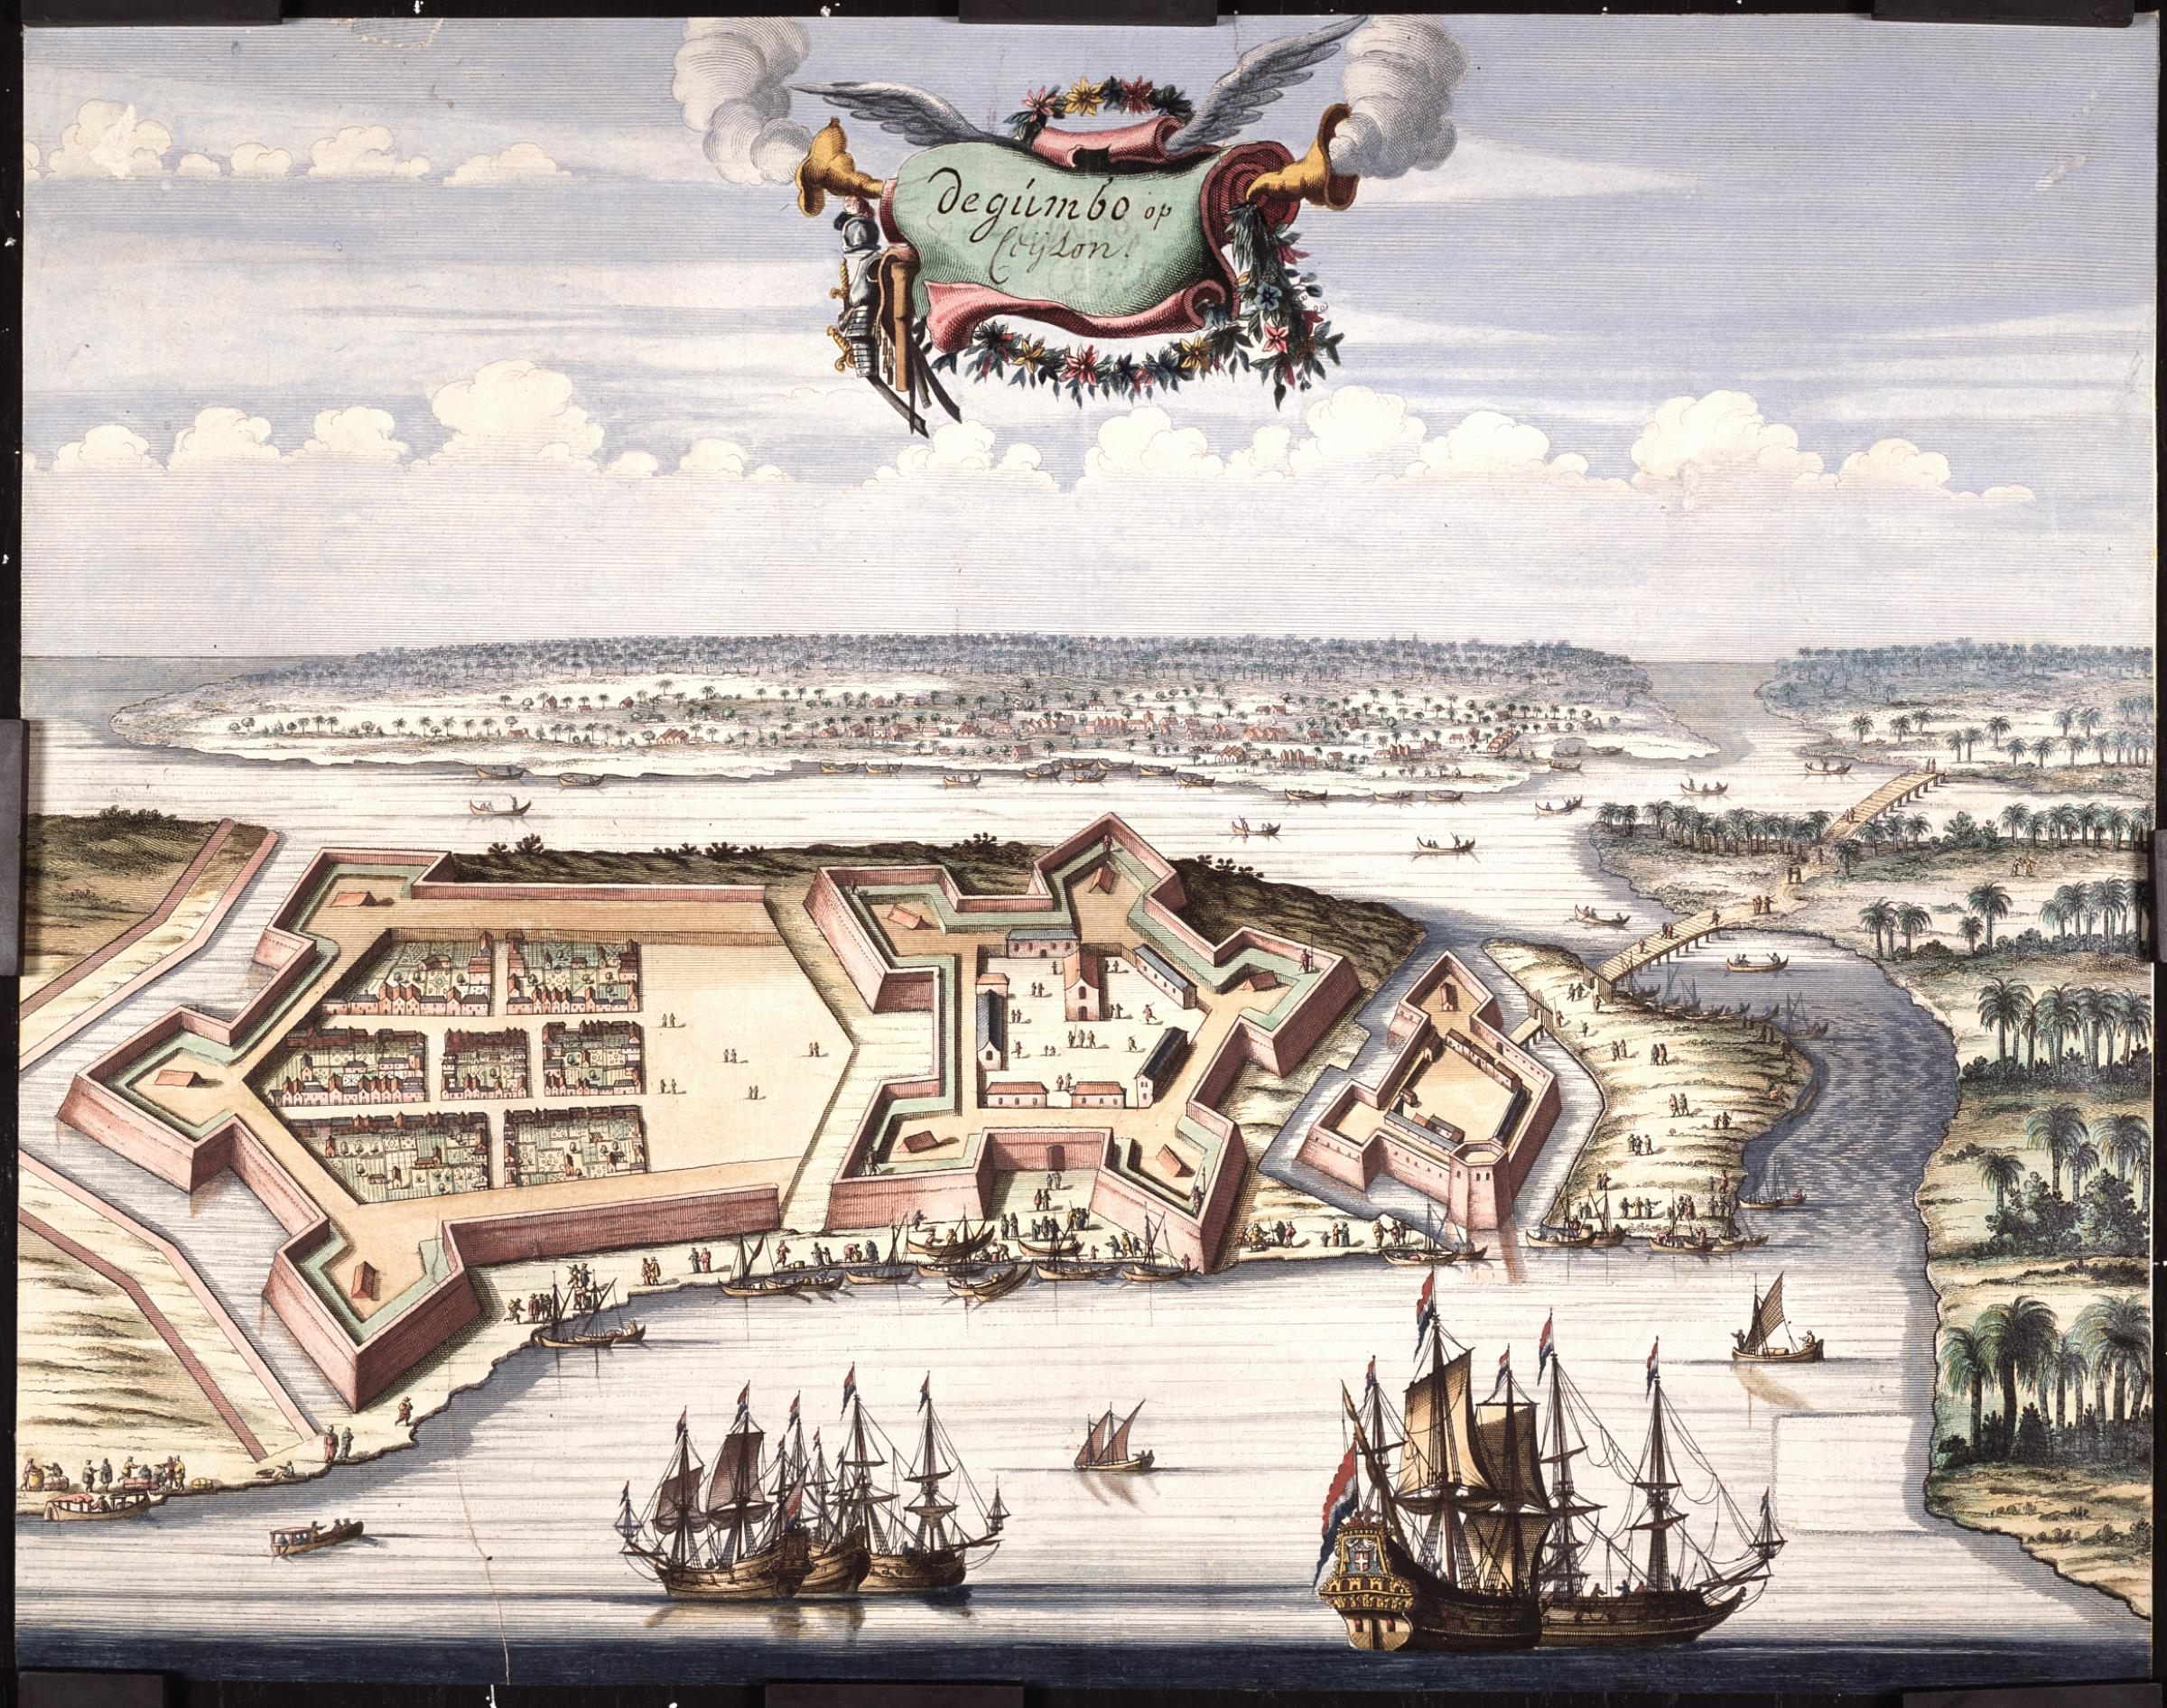 The Dutch Fort of Negombo